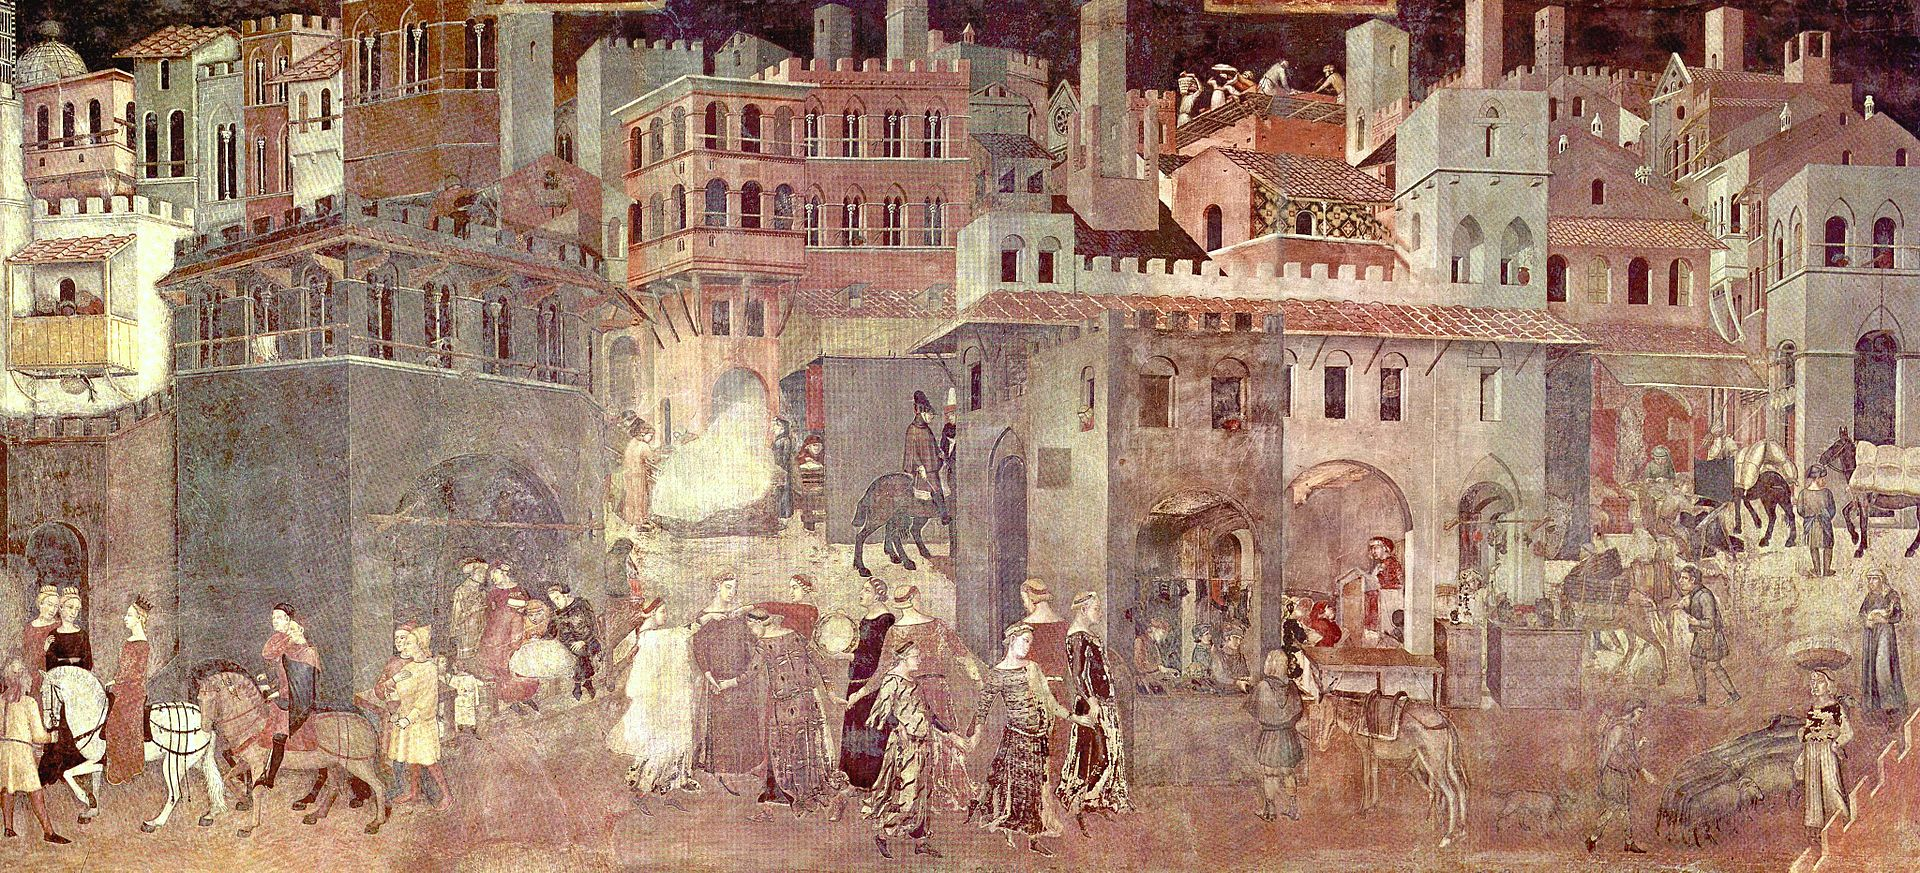 Ambrogio_Lorenzetti_Allegory_of_Good_Govt